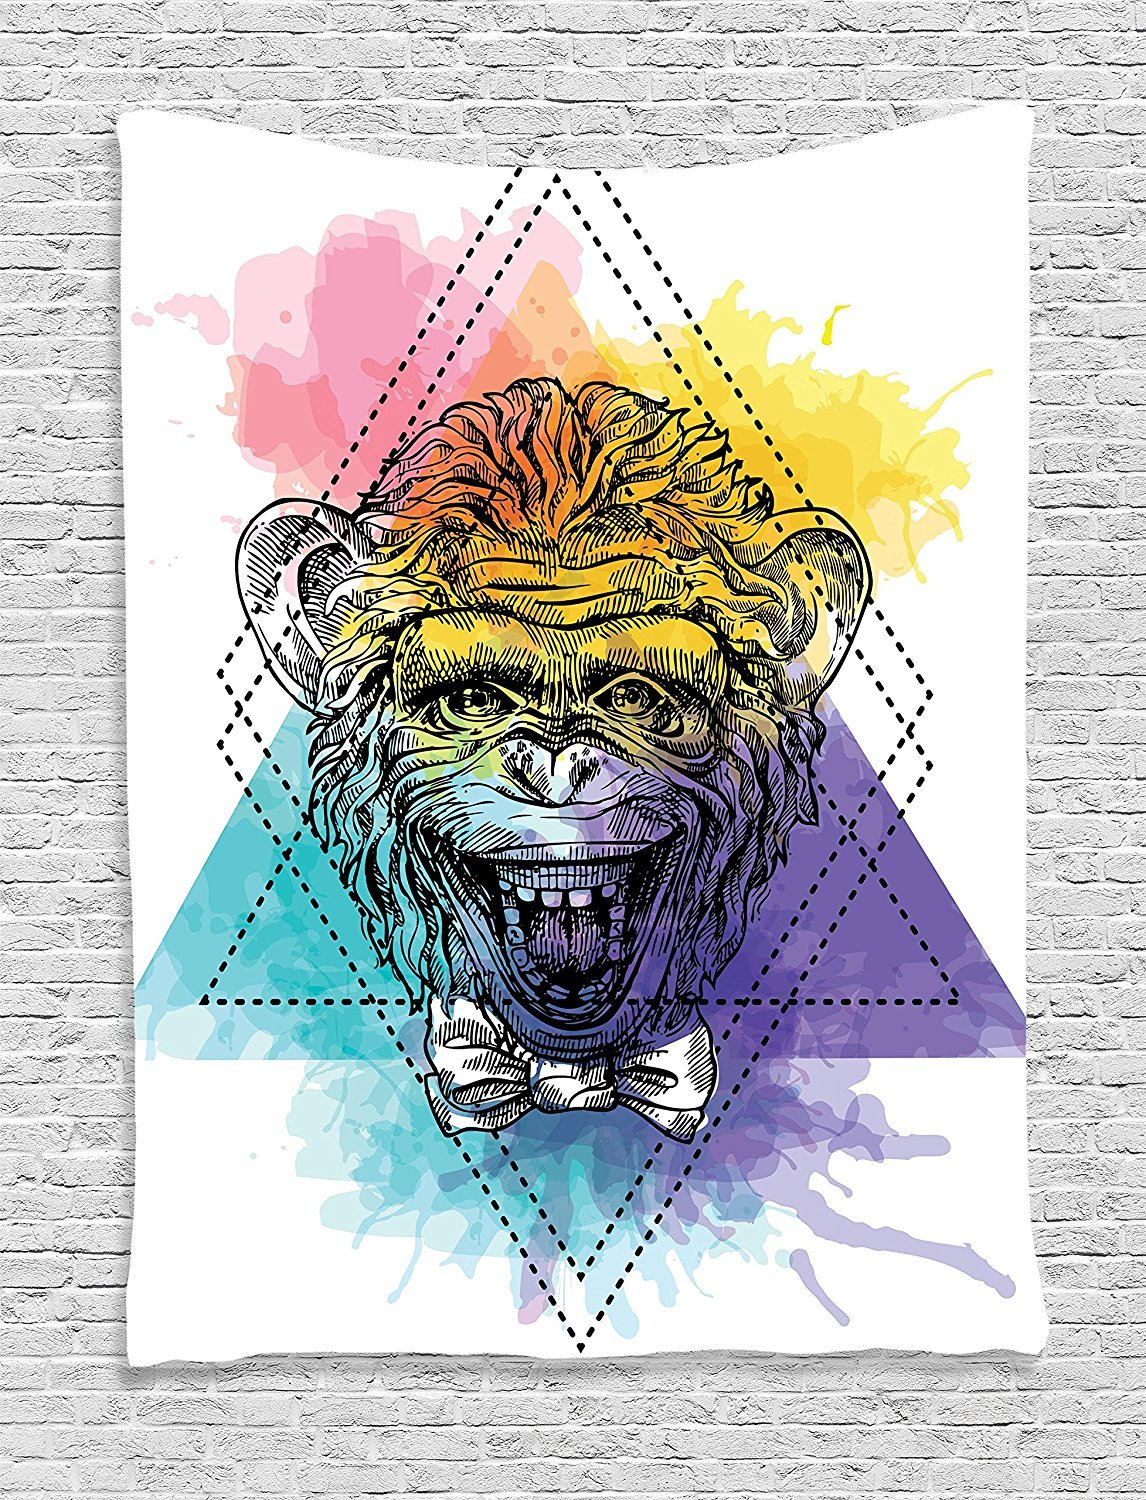 asddcdfdd Sketchy Tapestry, Funny Monkey Animal with a Bowtie on Geometric Artistic Watercolor Style Backdrop, Wall Hanging for Bedroom Living Room Dorm, 60 W X 80 L Inches, Multicolor